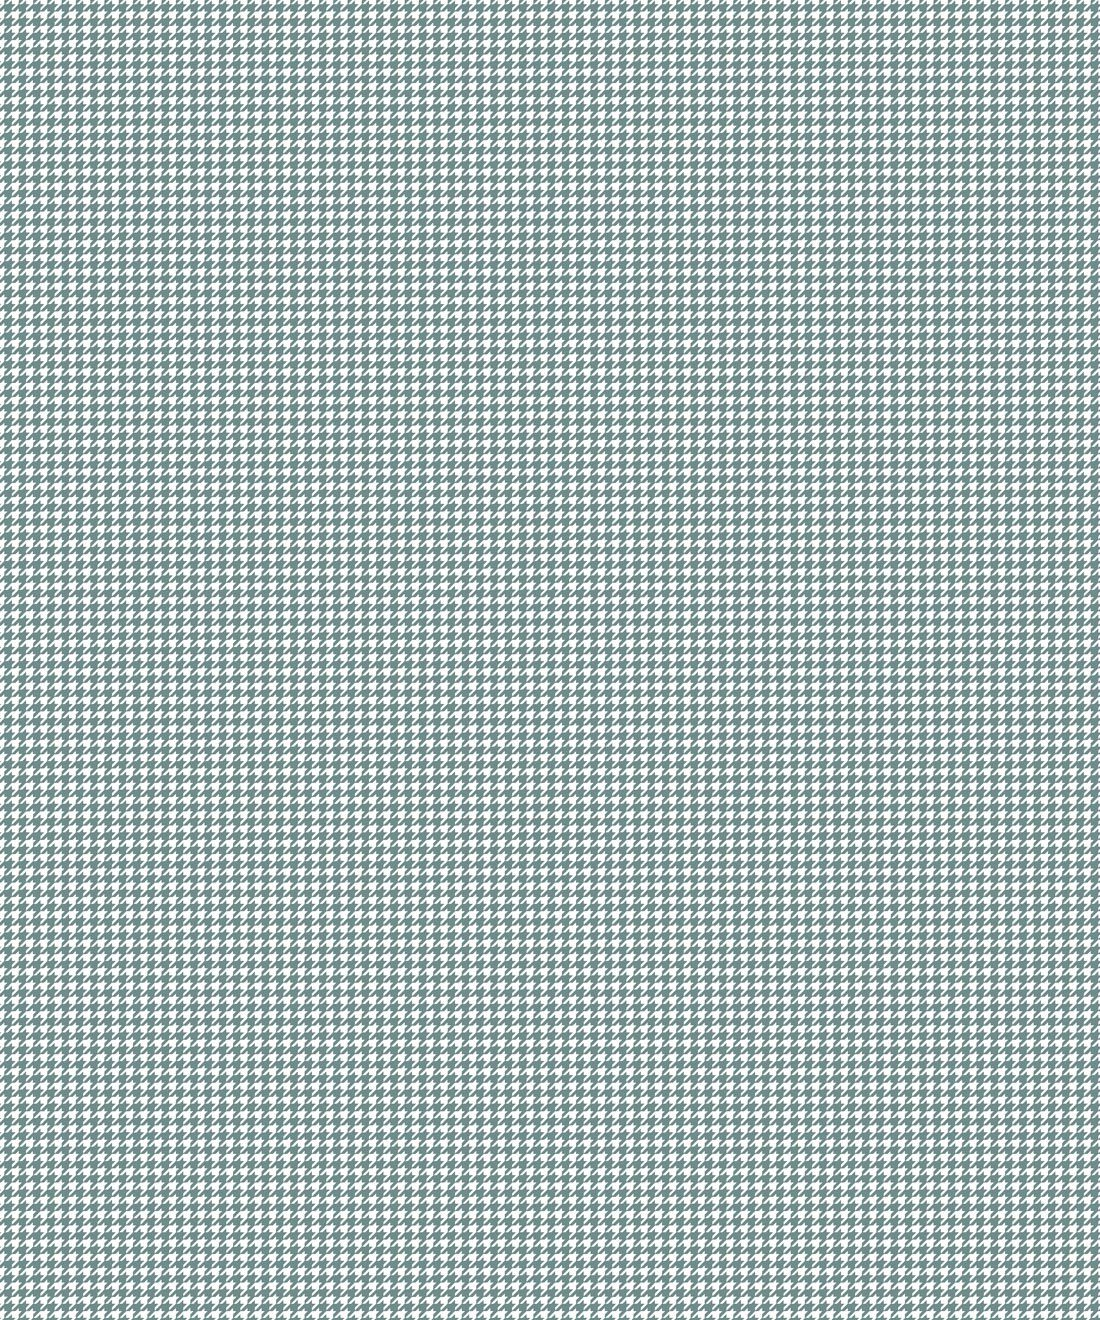 Houndstooth Wallpaper • Dogstooth Wallpaper • Teal Pewter •Swatch